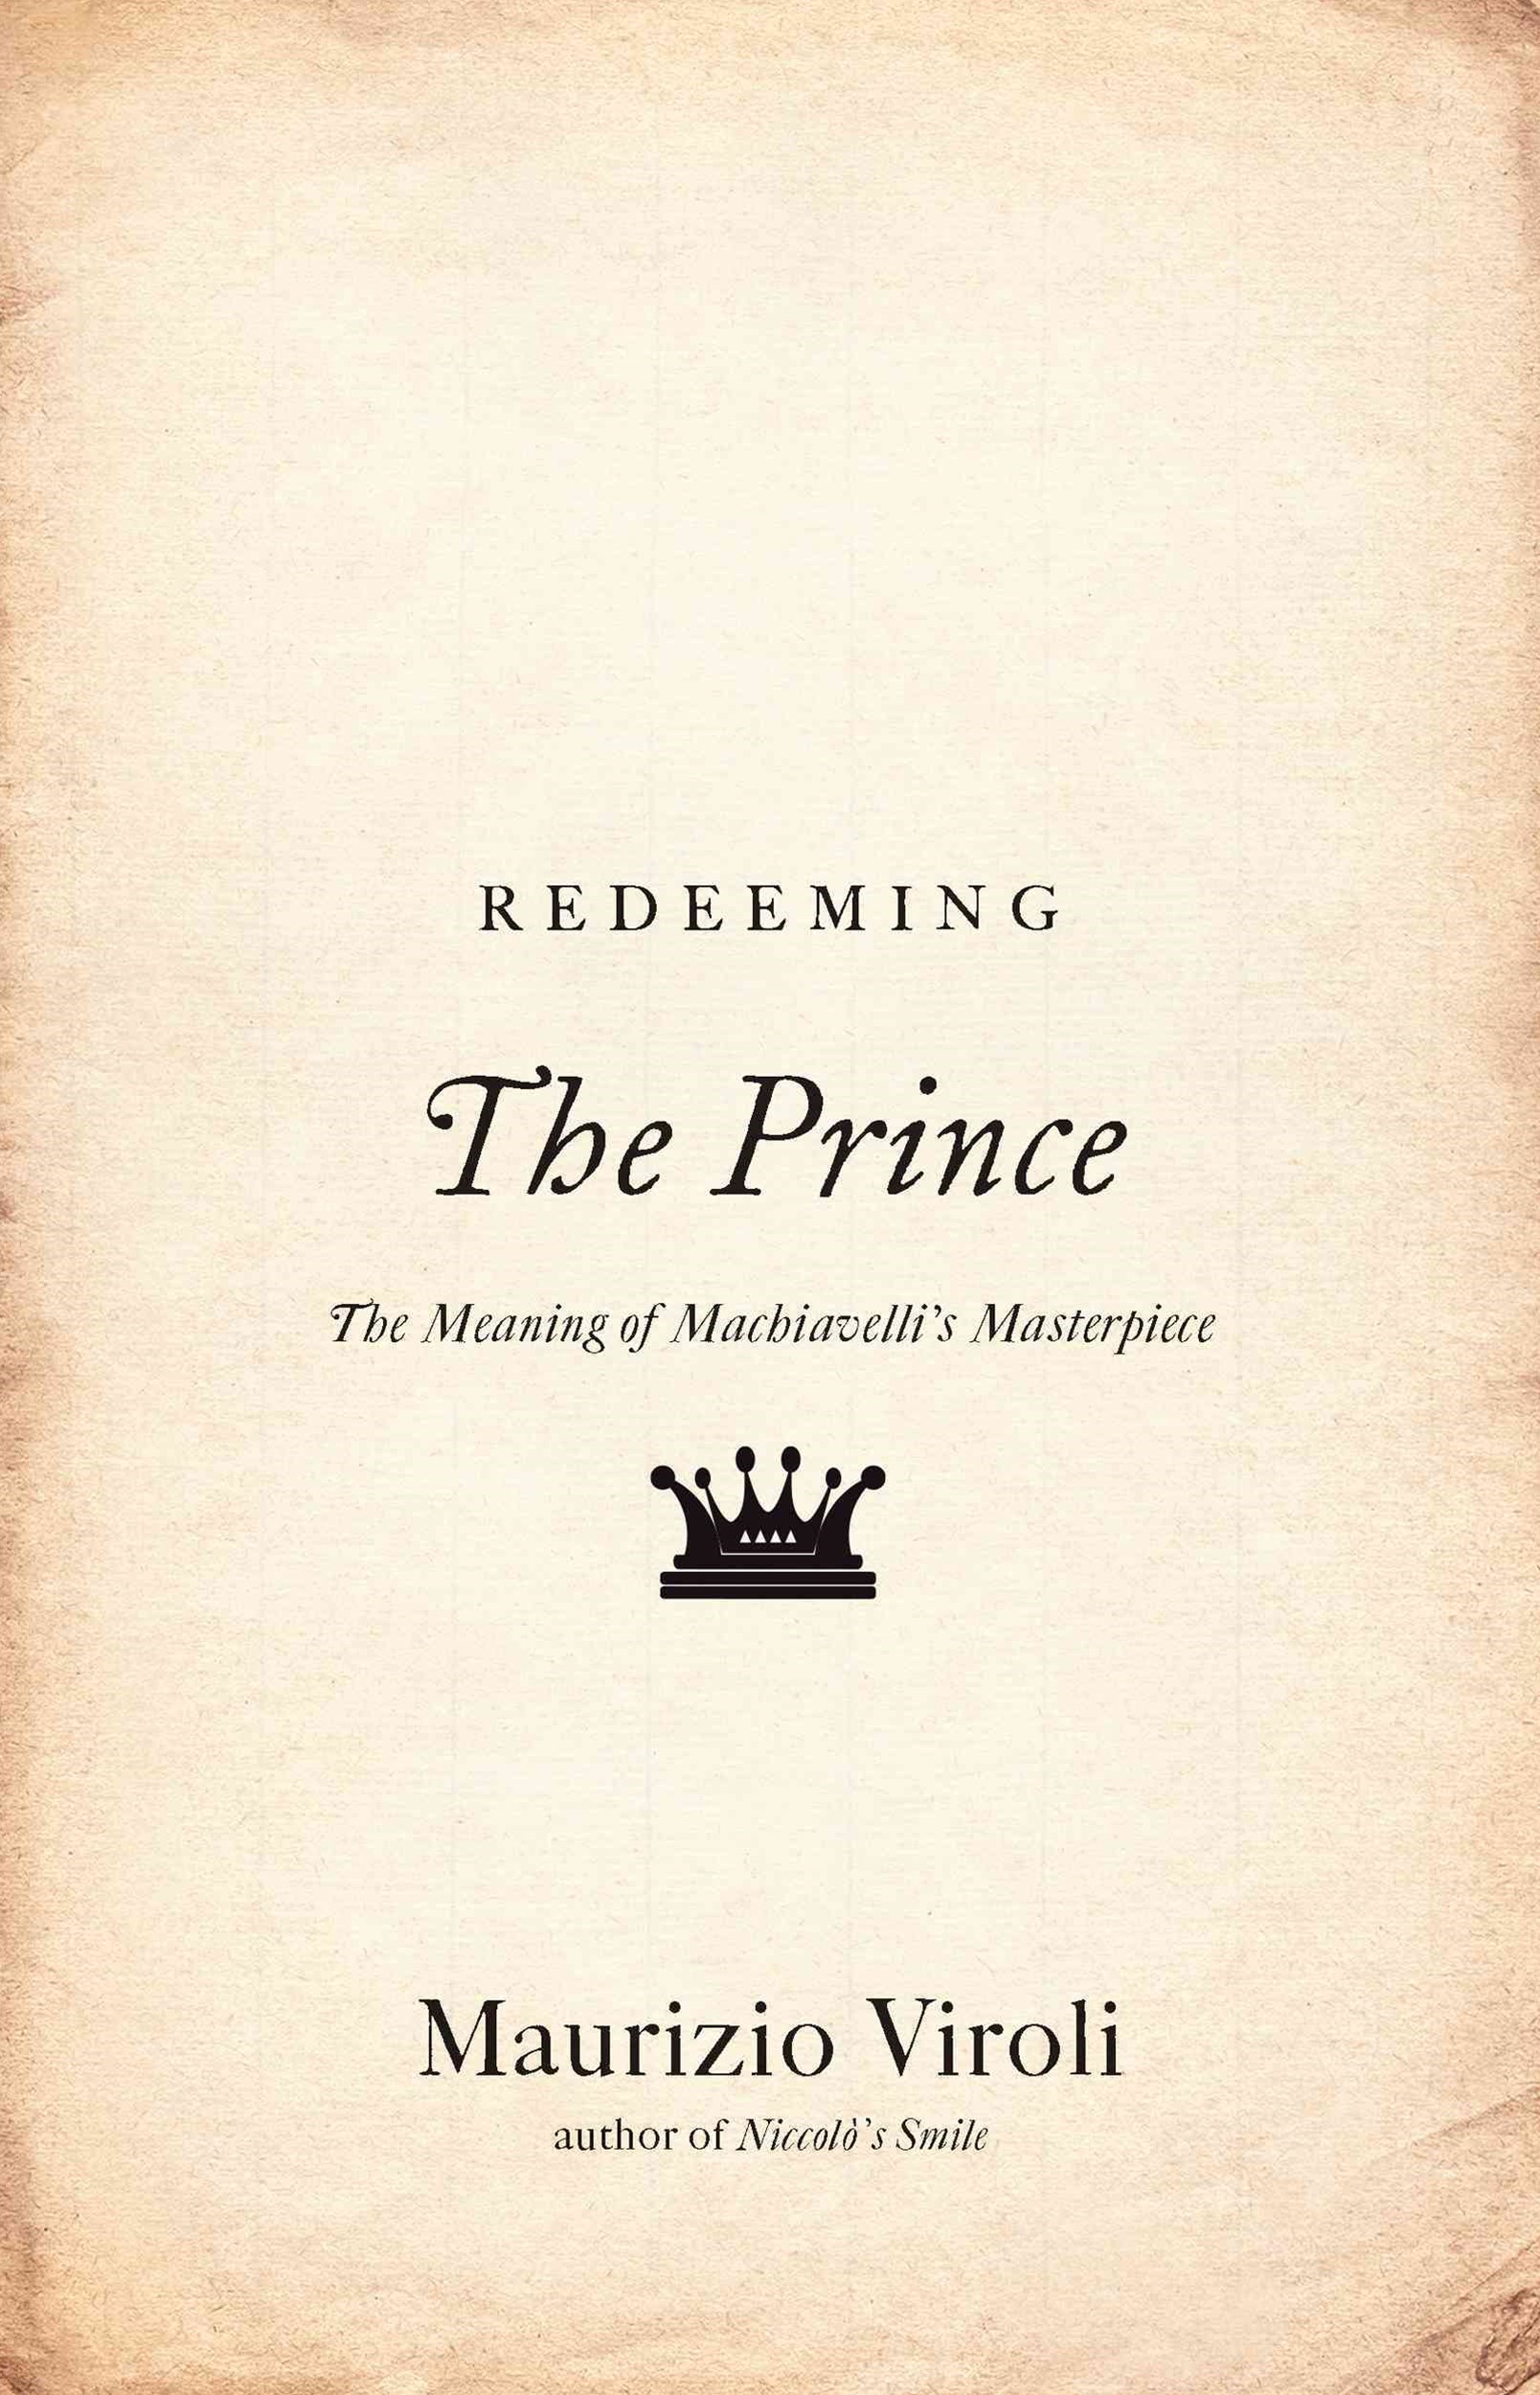 Redeeming - The Prince